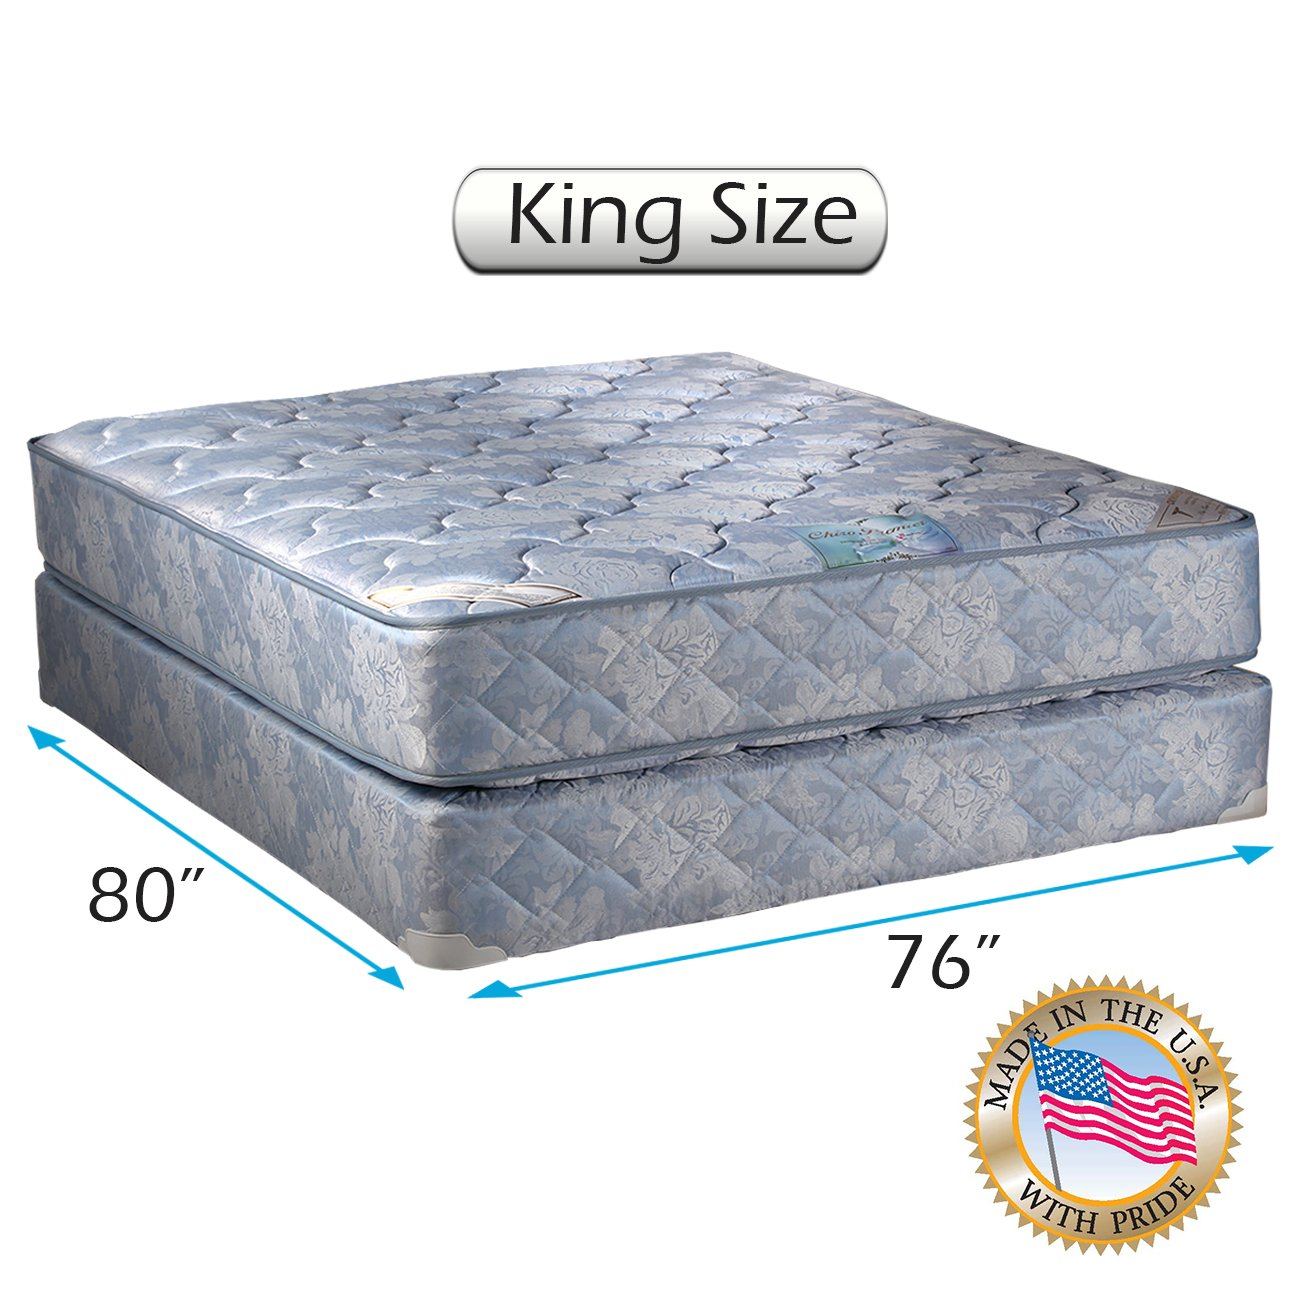 Chiro Premier Orthopedic (Blue Color) King Size (76''x80''x9'') Mattress and Box Spring Set - Fully Assembled, Good for your back, Superior Quality, Long Lasting and 2 Sided - By Dream Solutions USA by Dream Solutions USA